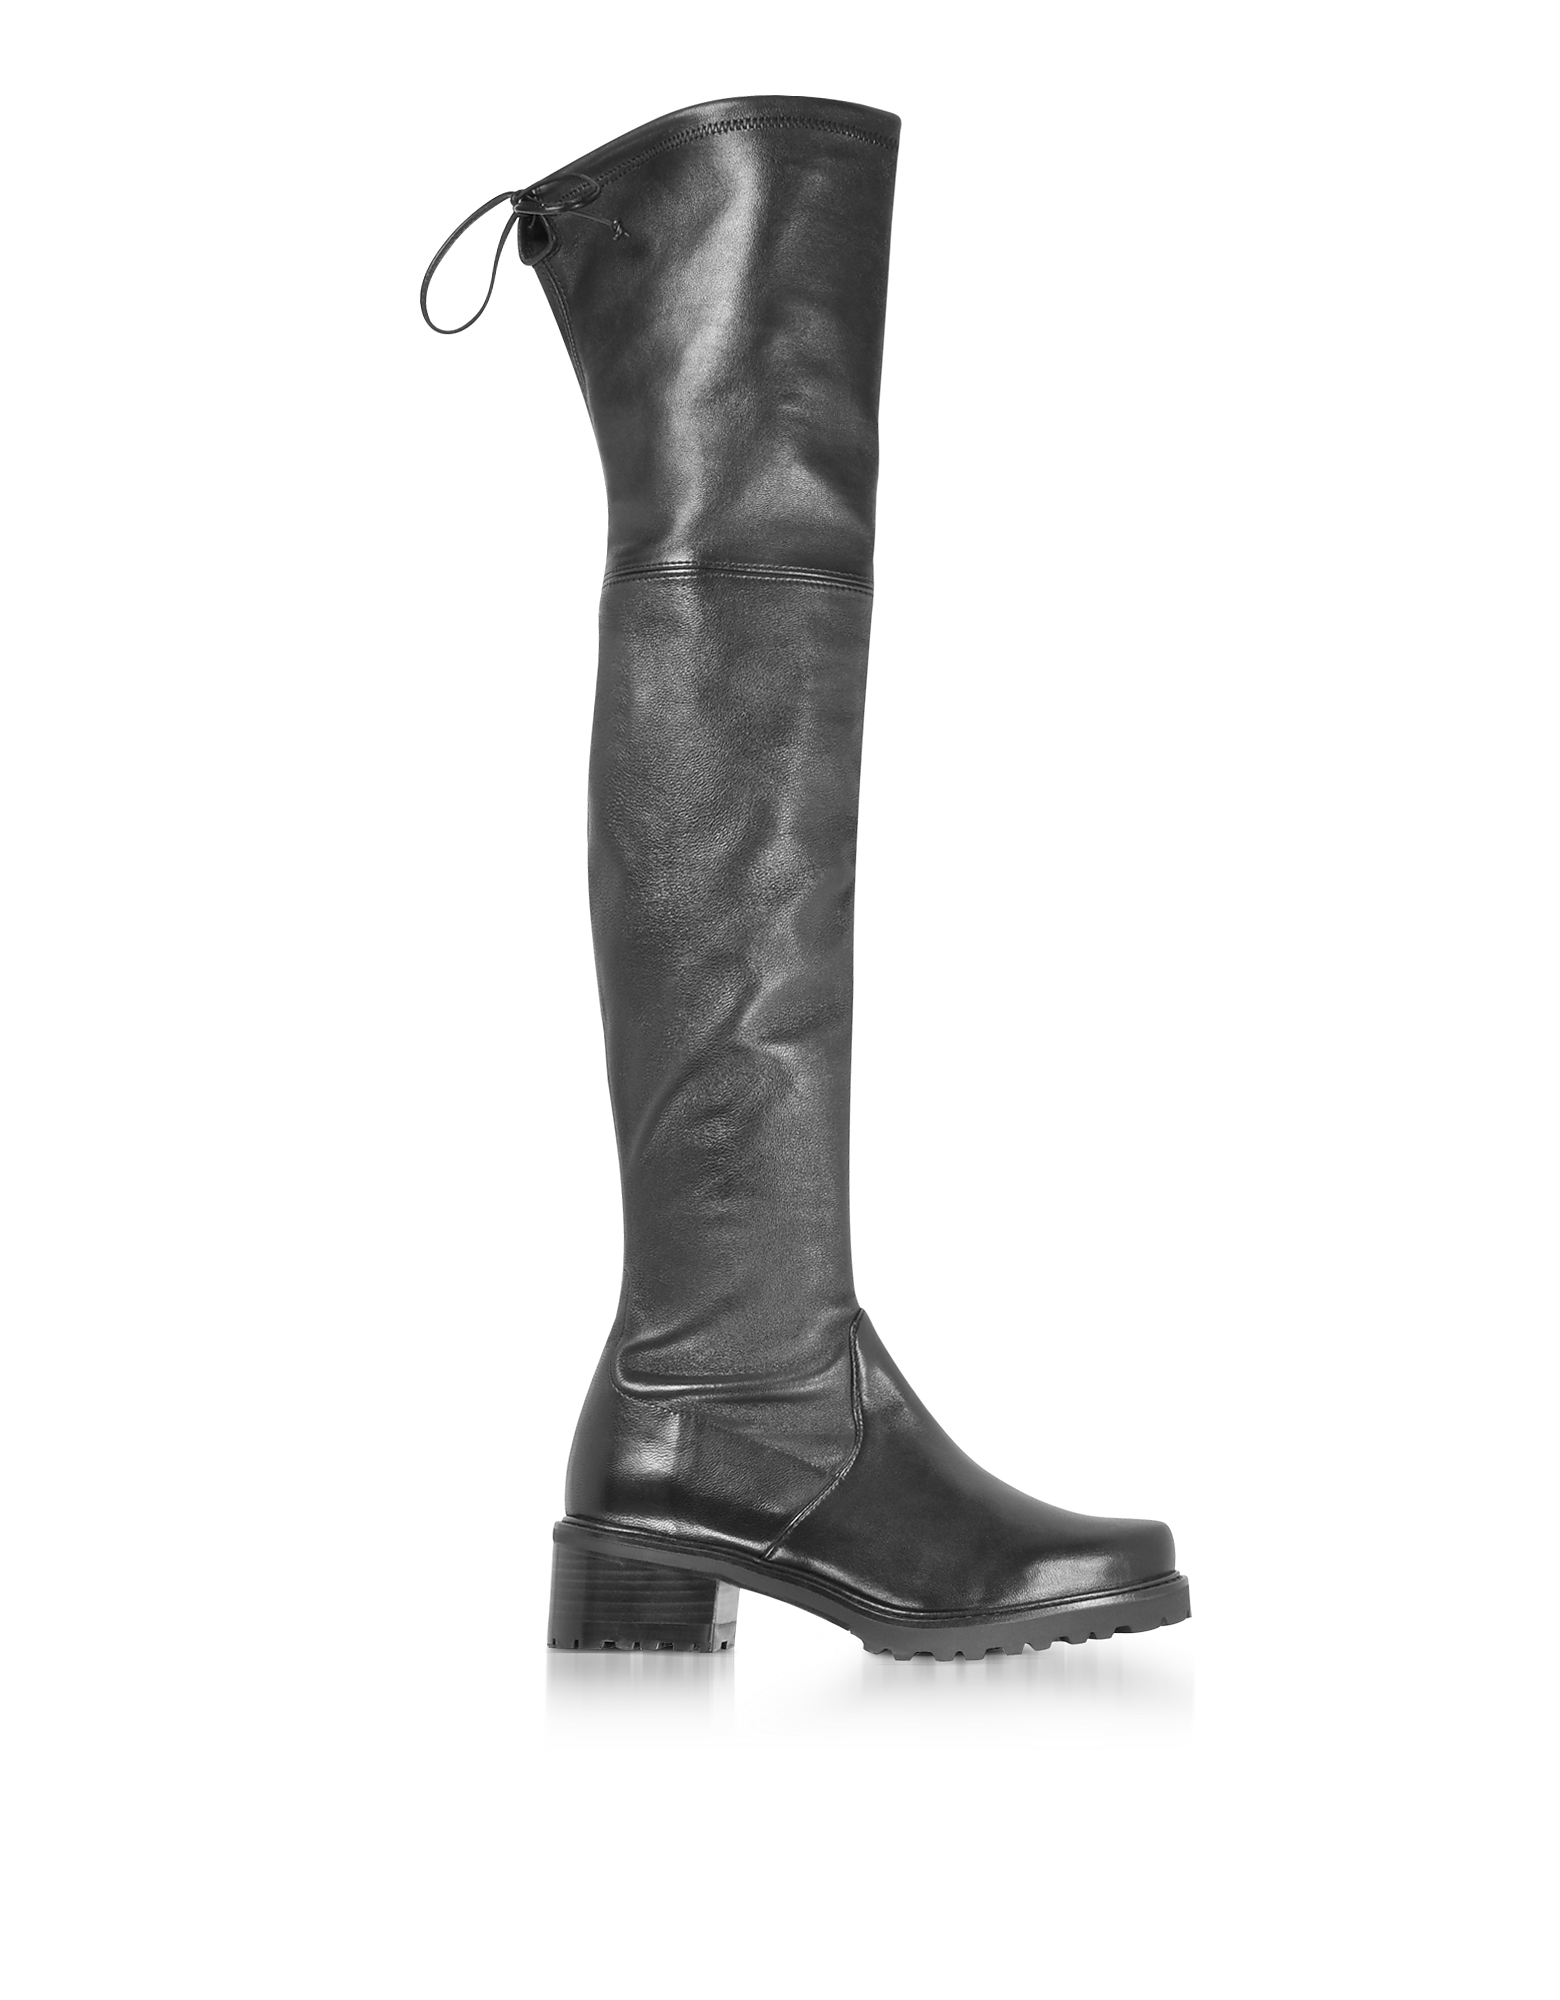 Stuart Weitzman Shoes, Vanland Black Stretch Leather Over The Knee Boots w/Brown Sole